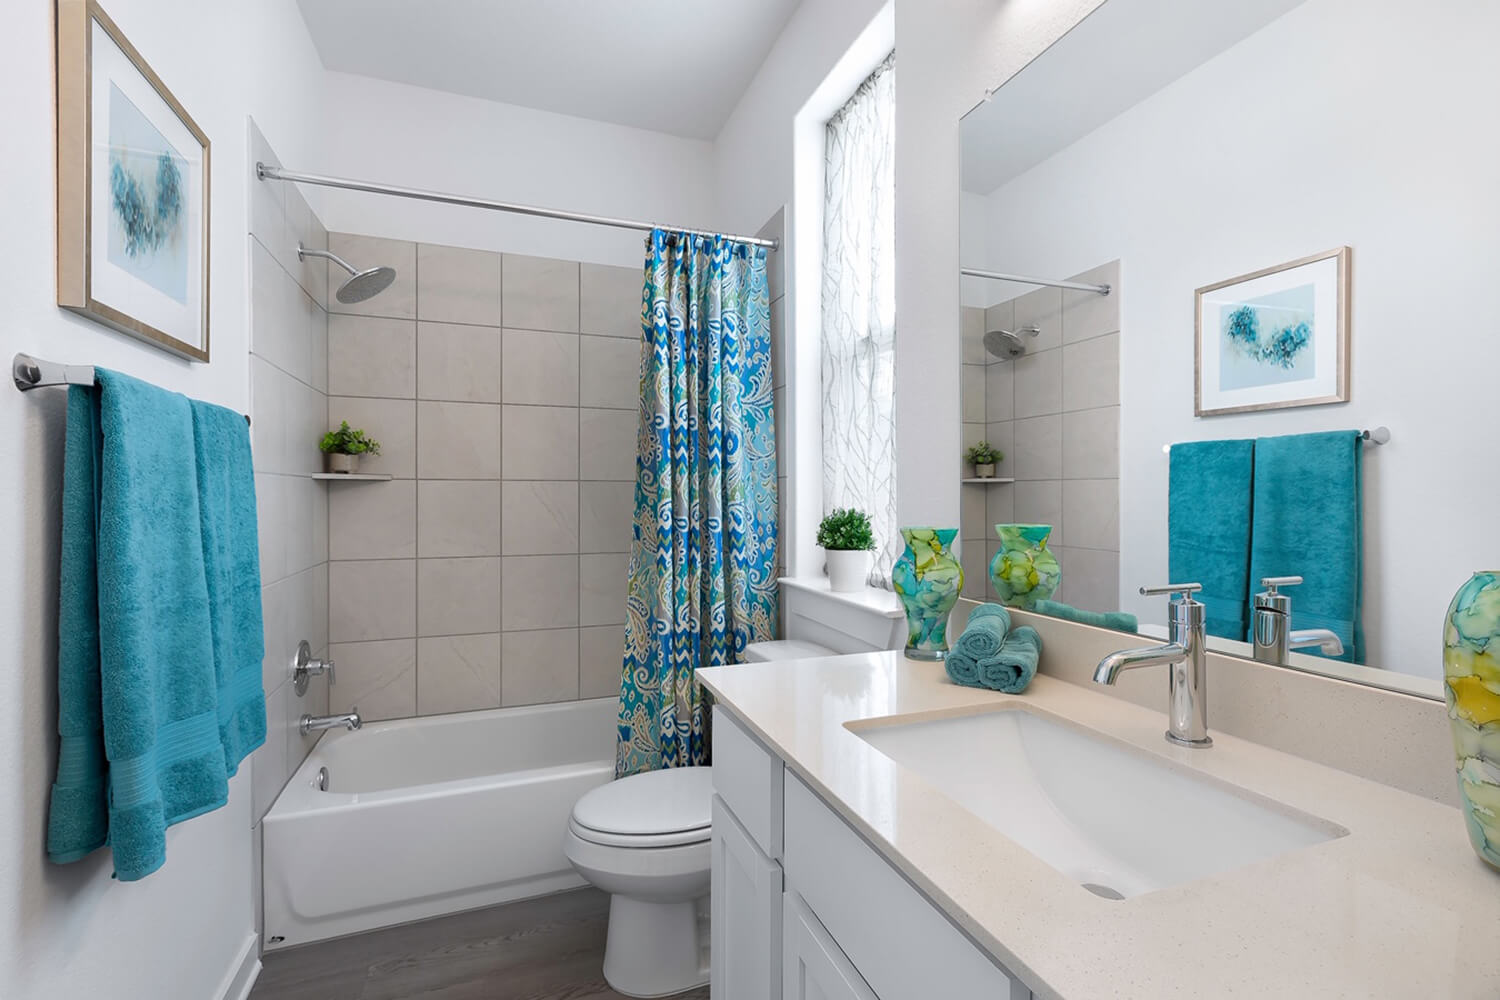 Trailside Oaks Townhomes Bath Room Photo